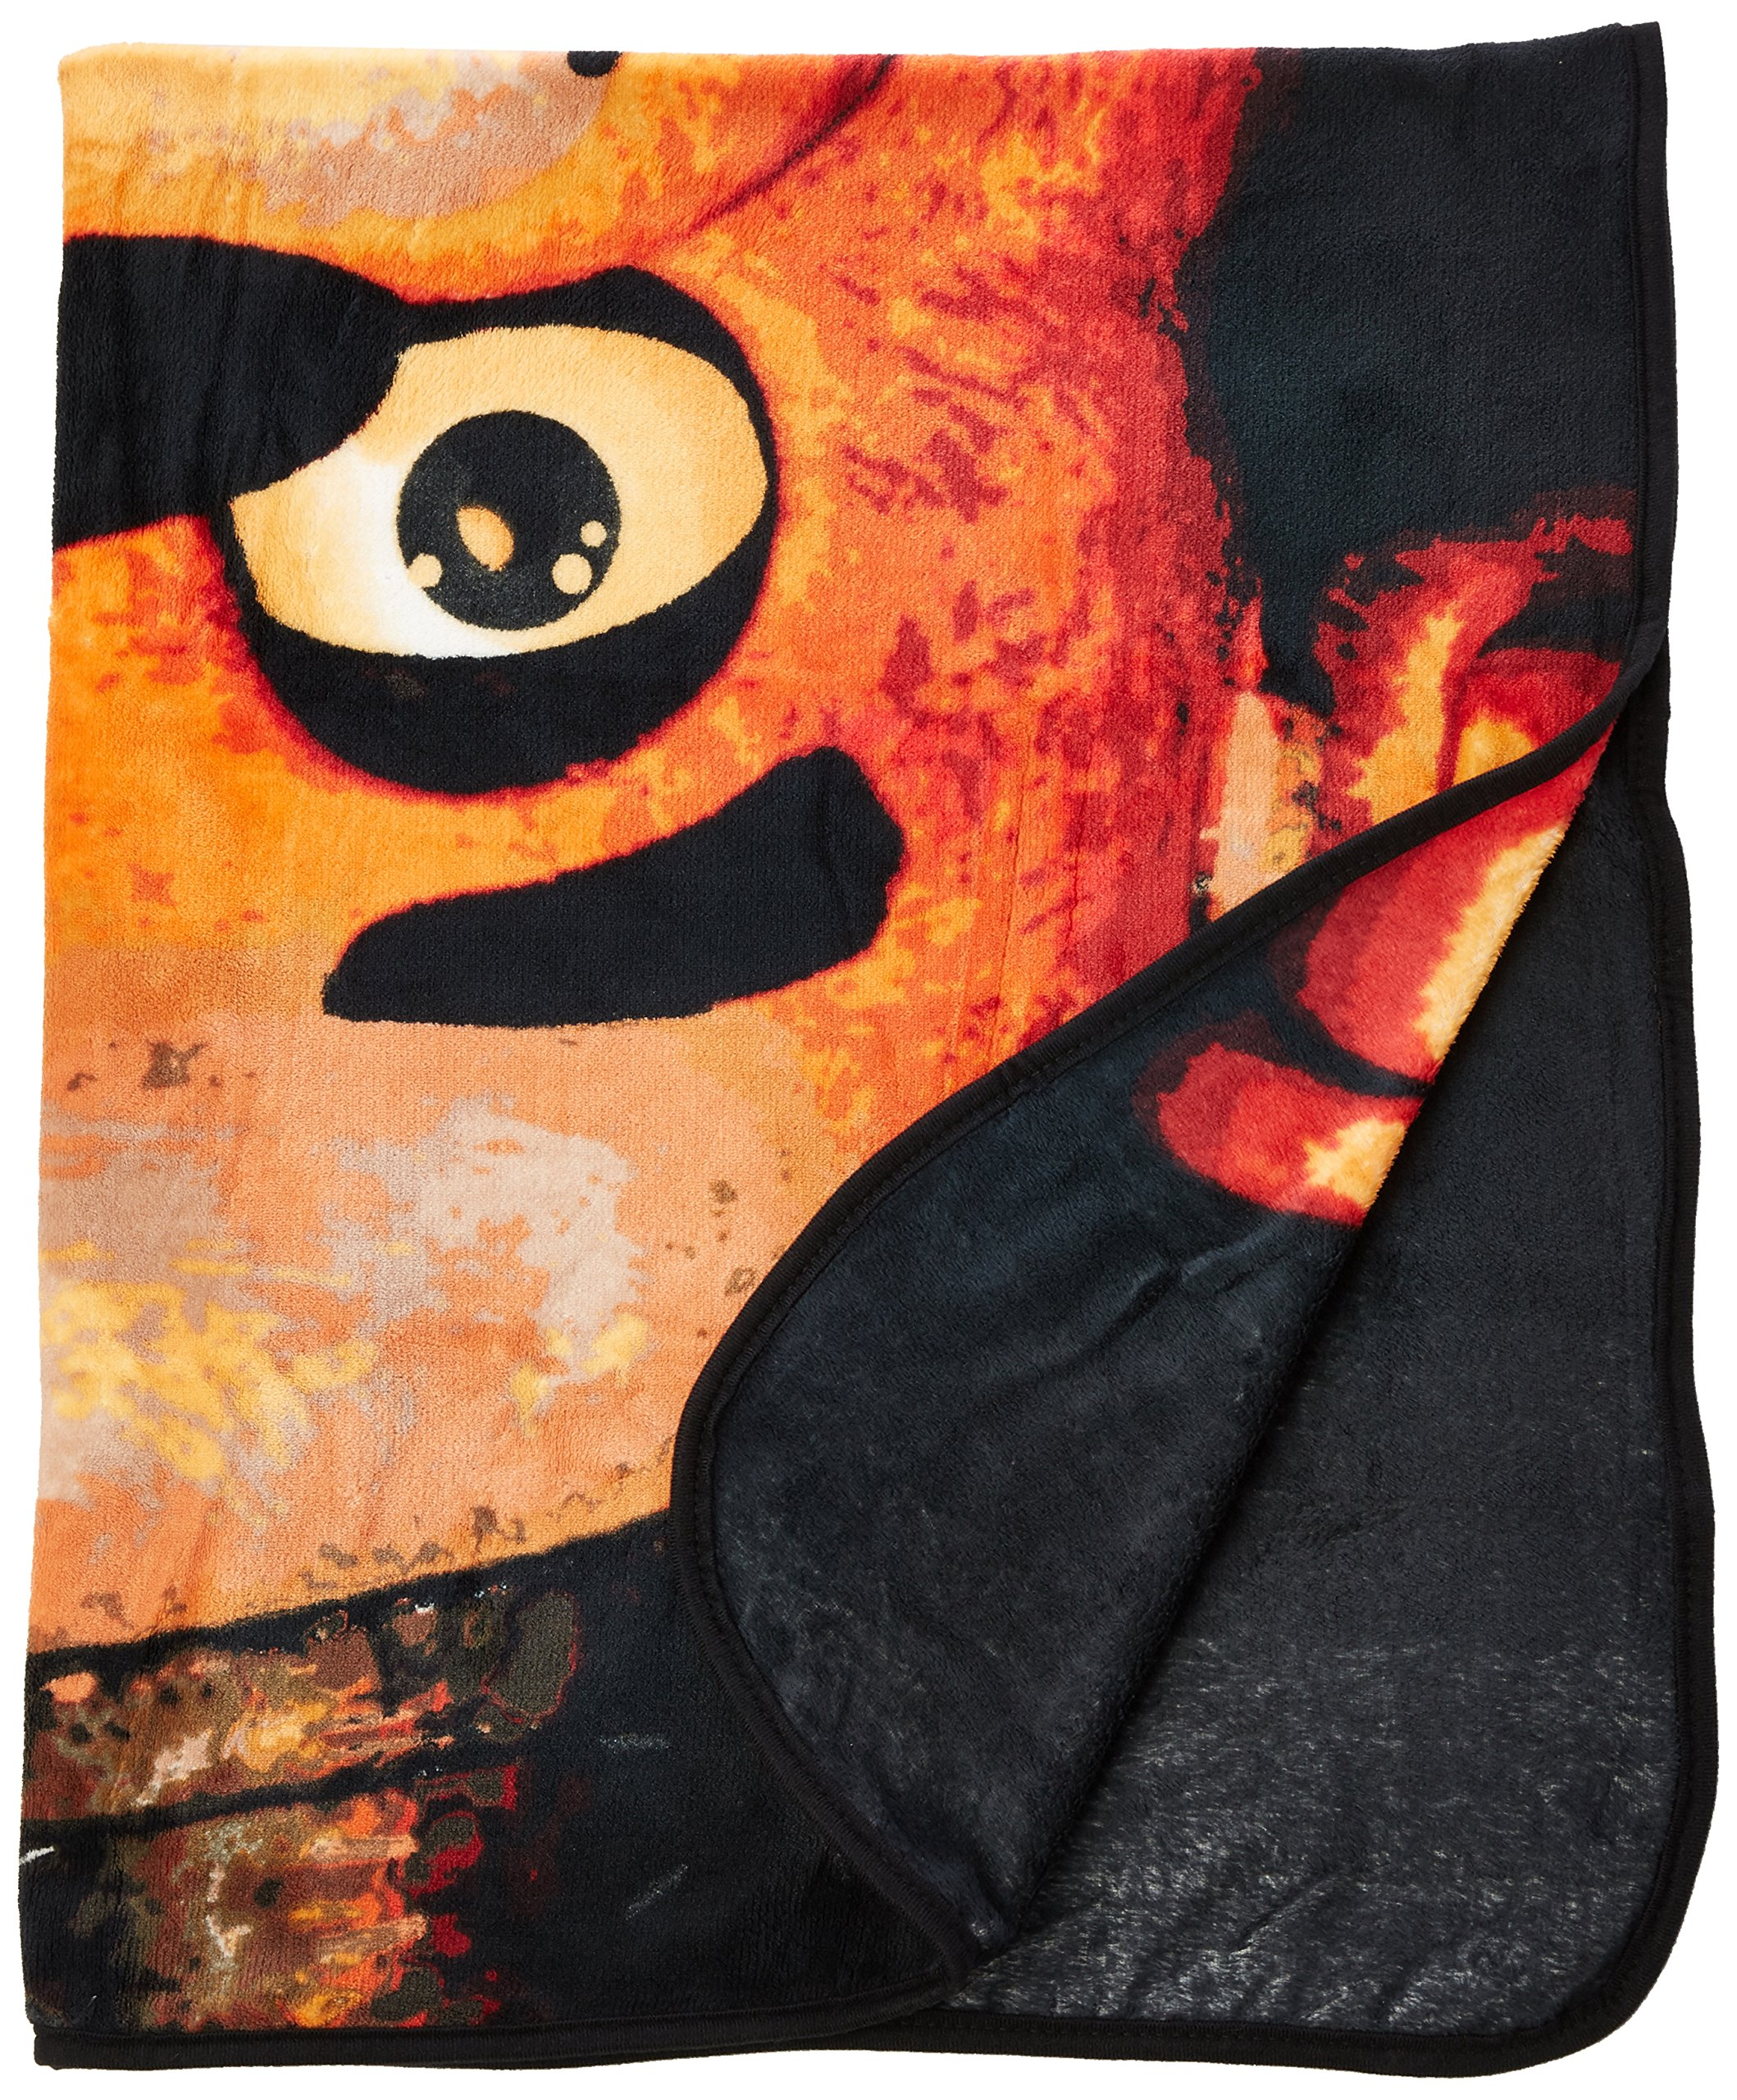 BIOWORLD Five Nights at Freddy's 48'' x 60'' Plush Throw Blanket